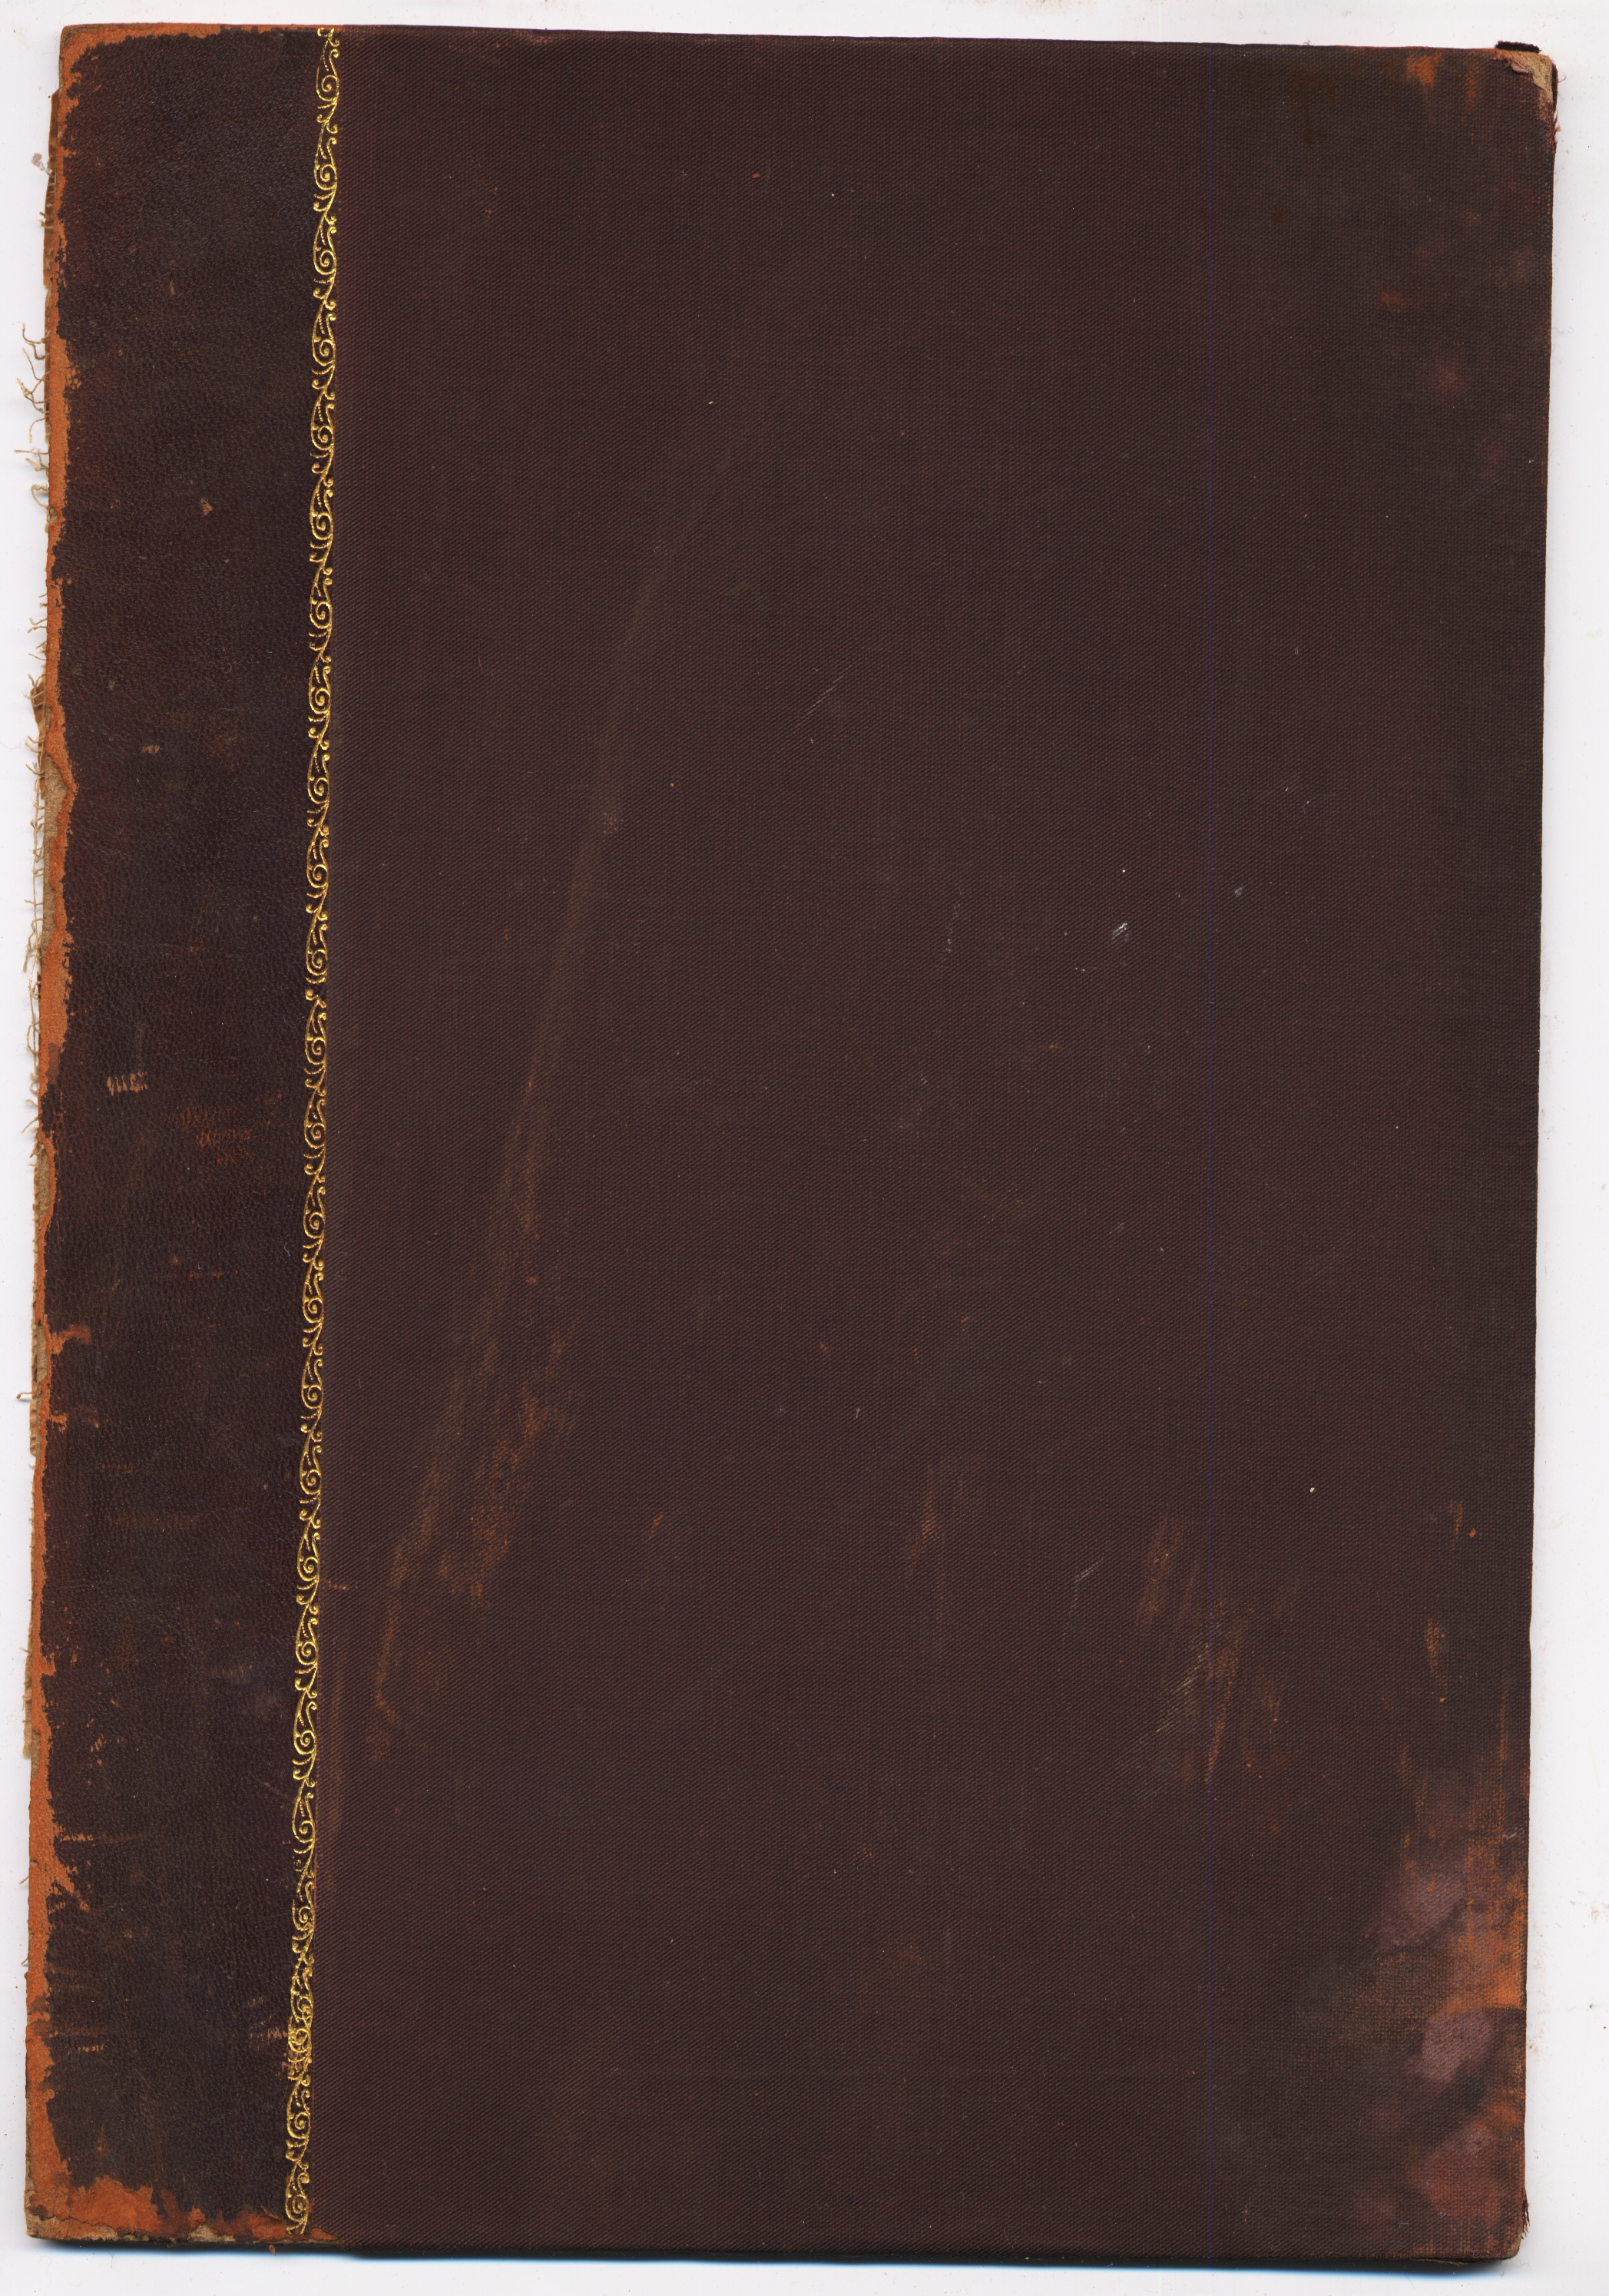 Paper Book Cover Name : Free black bumpy old book cover texture l t